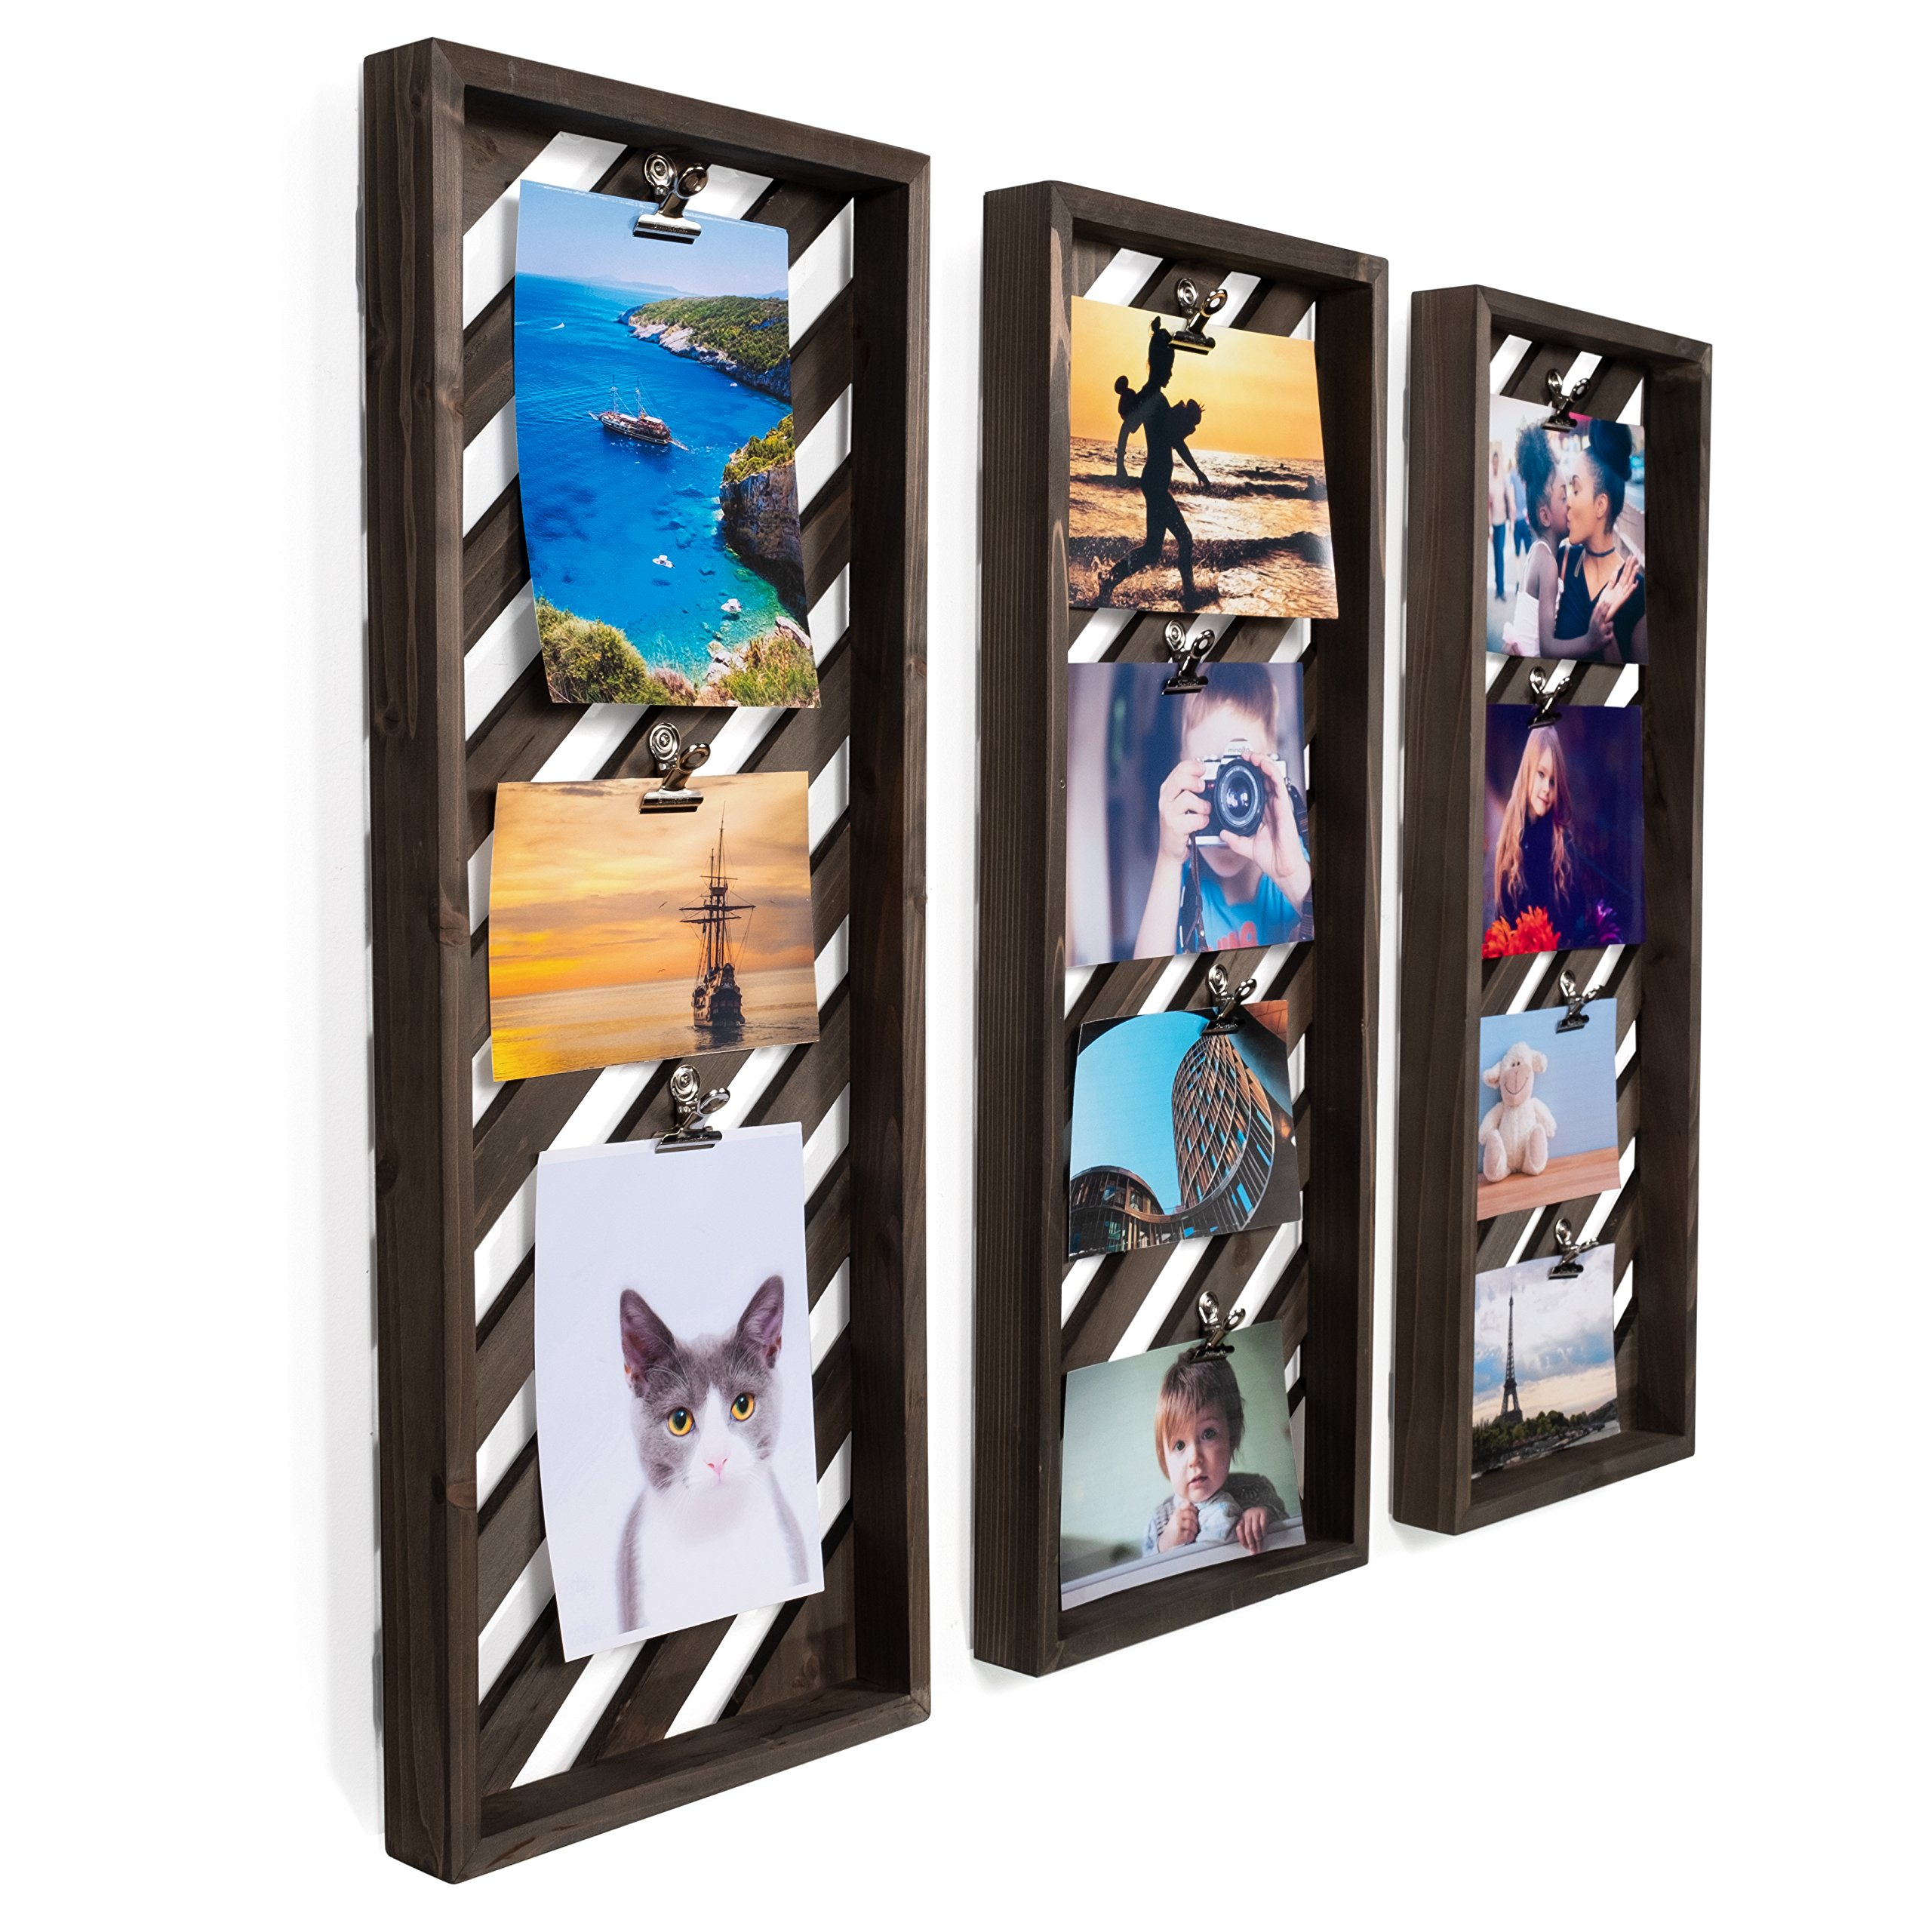 Brightmaison Rustic Décor Photo Display Clip Board Wood 23 Inch Set of 3 (Gray)